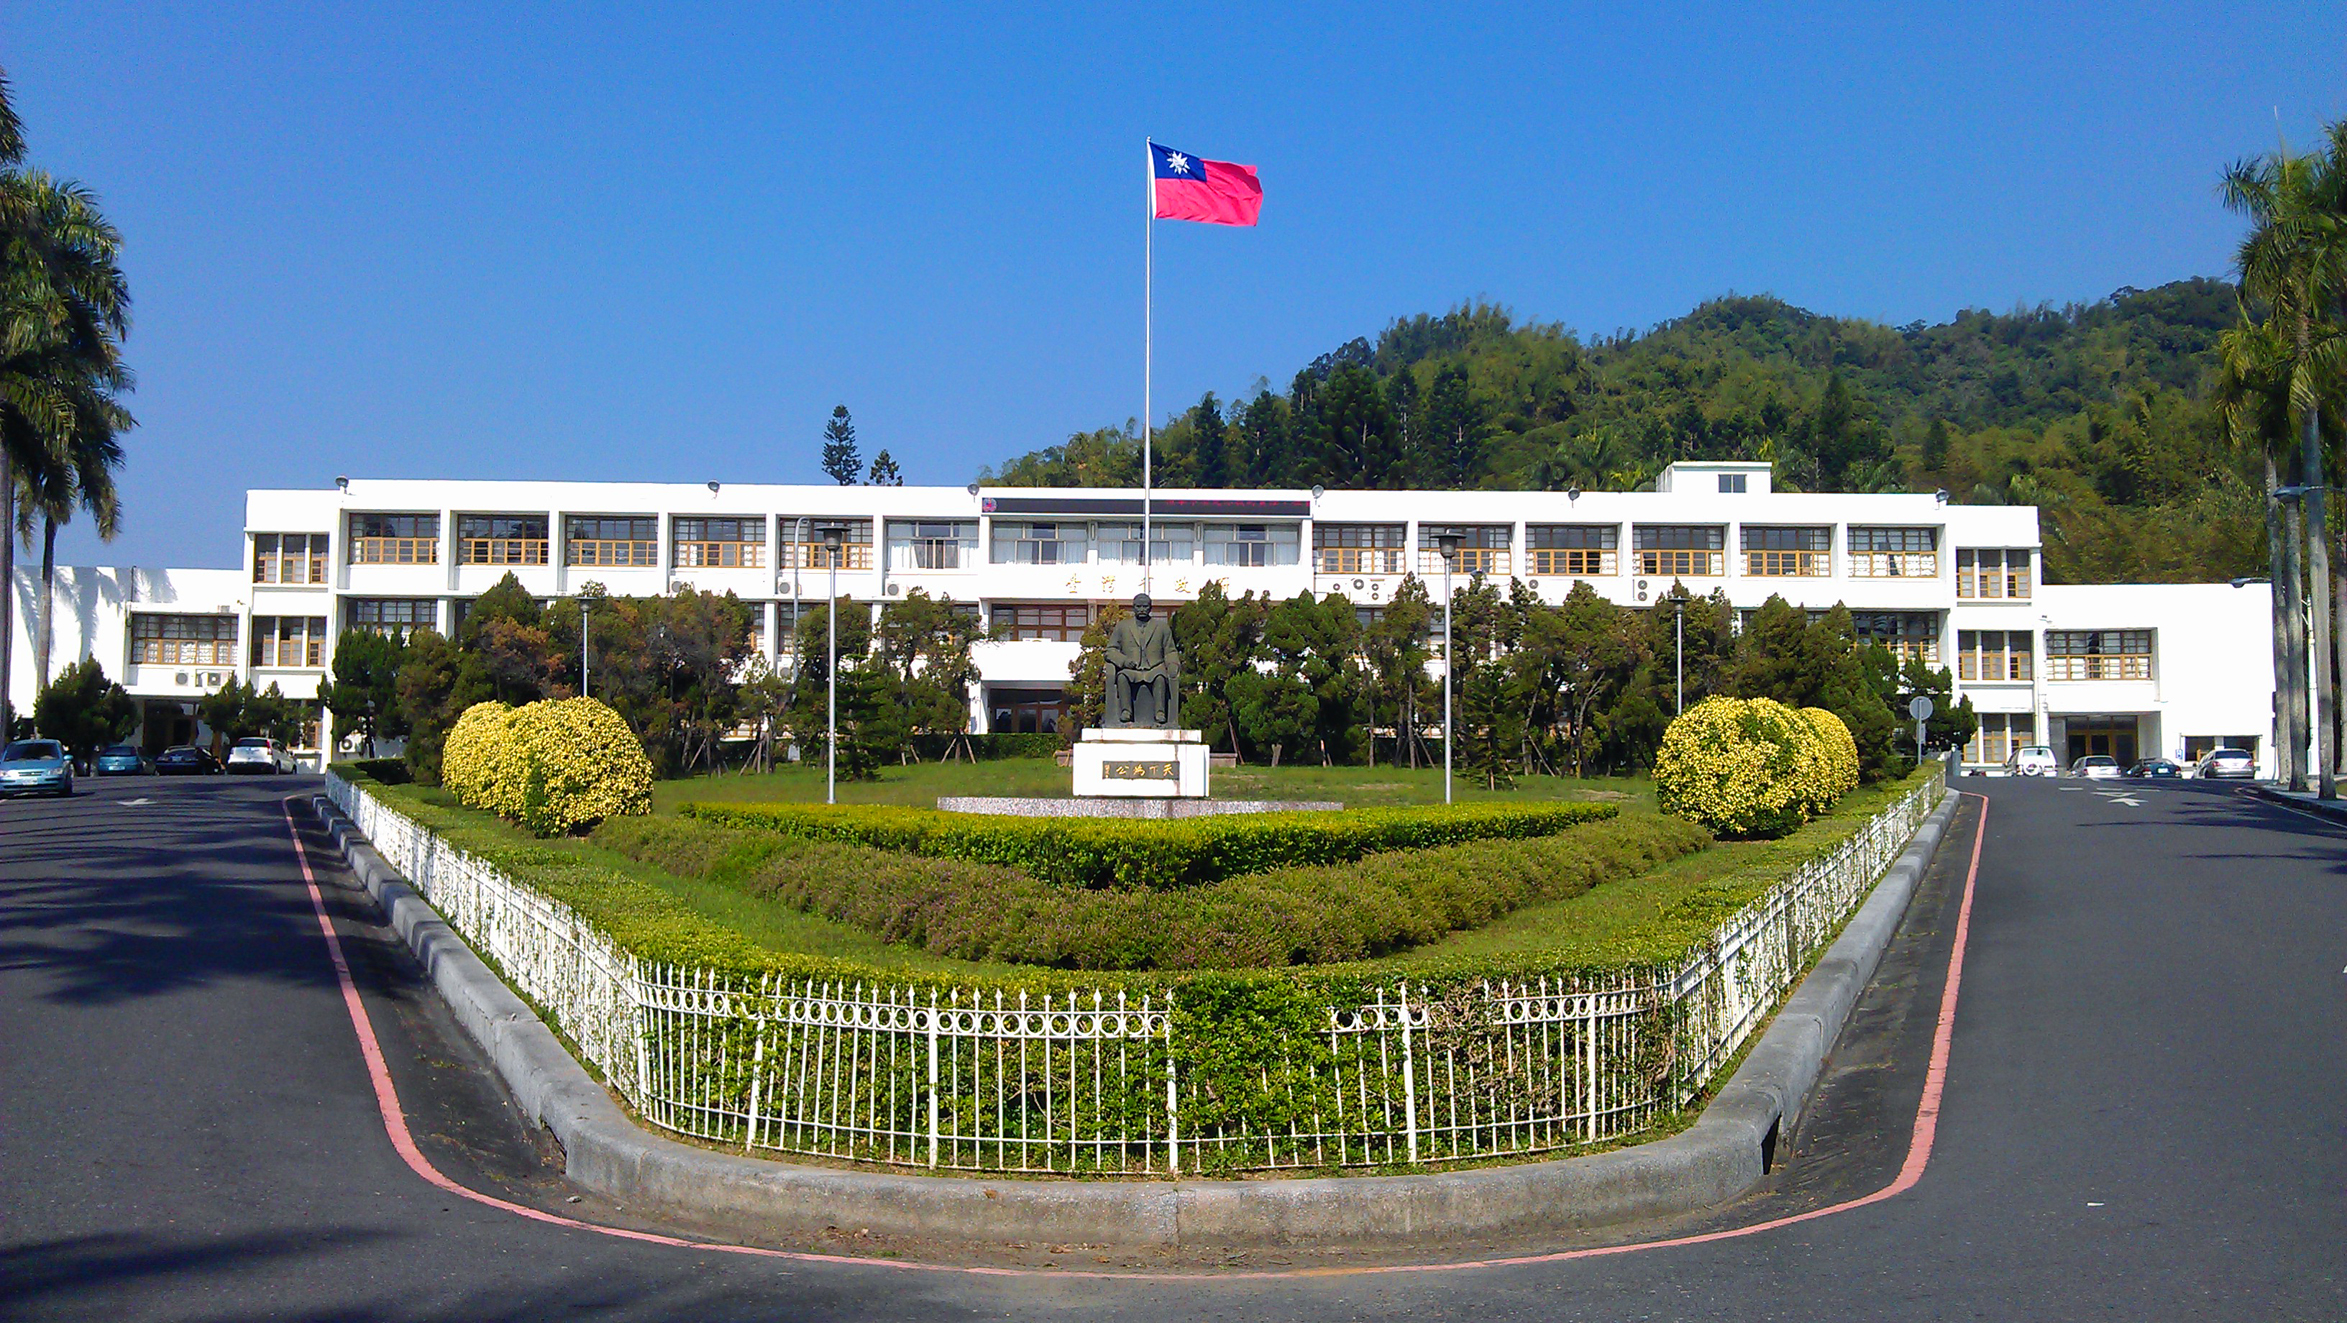 The USA Taiwan Government Occupies Taiwans Provincial Government